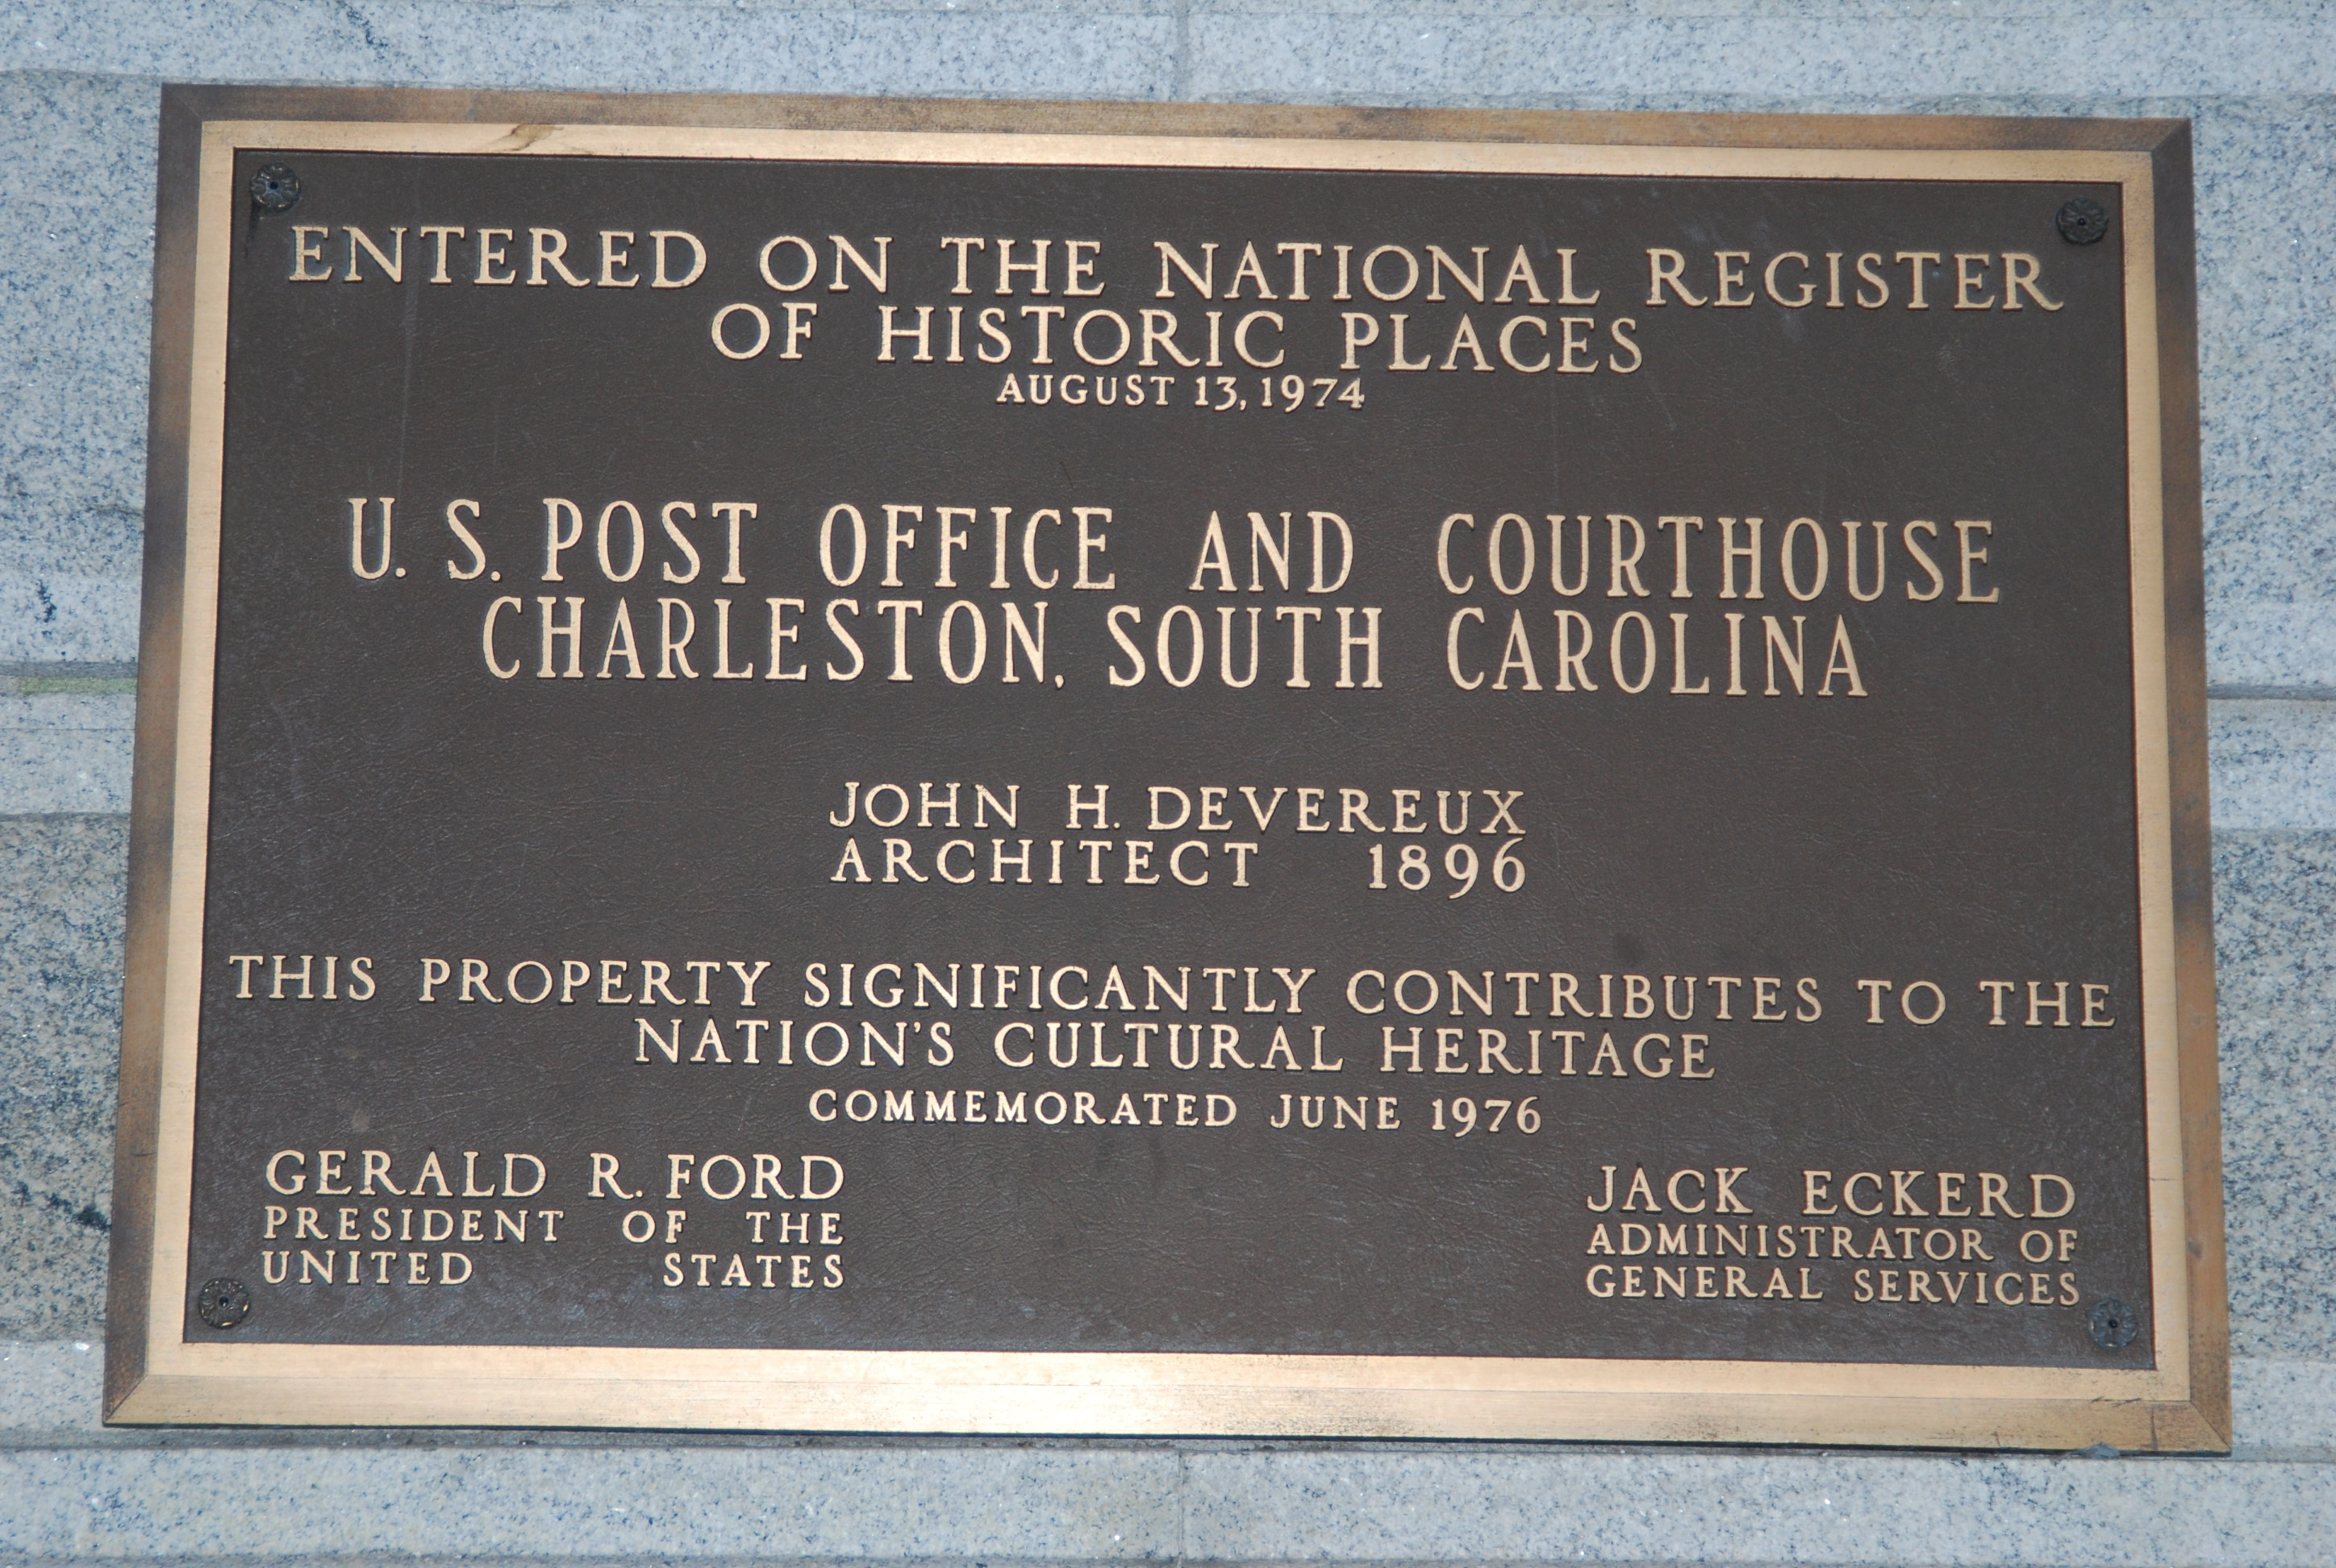 U.S. Post Office and Courthouse Marker